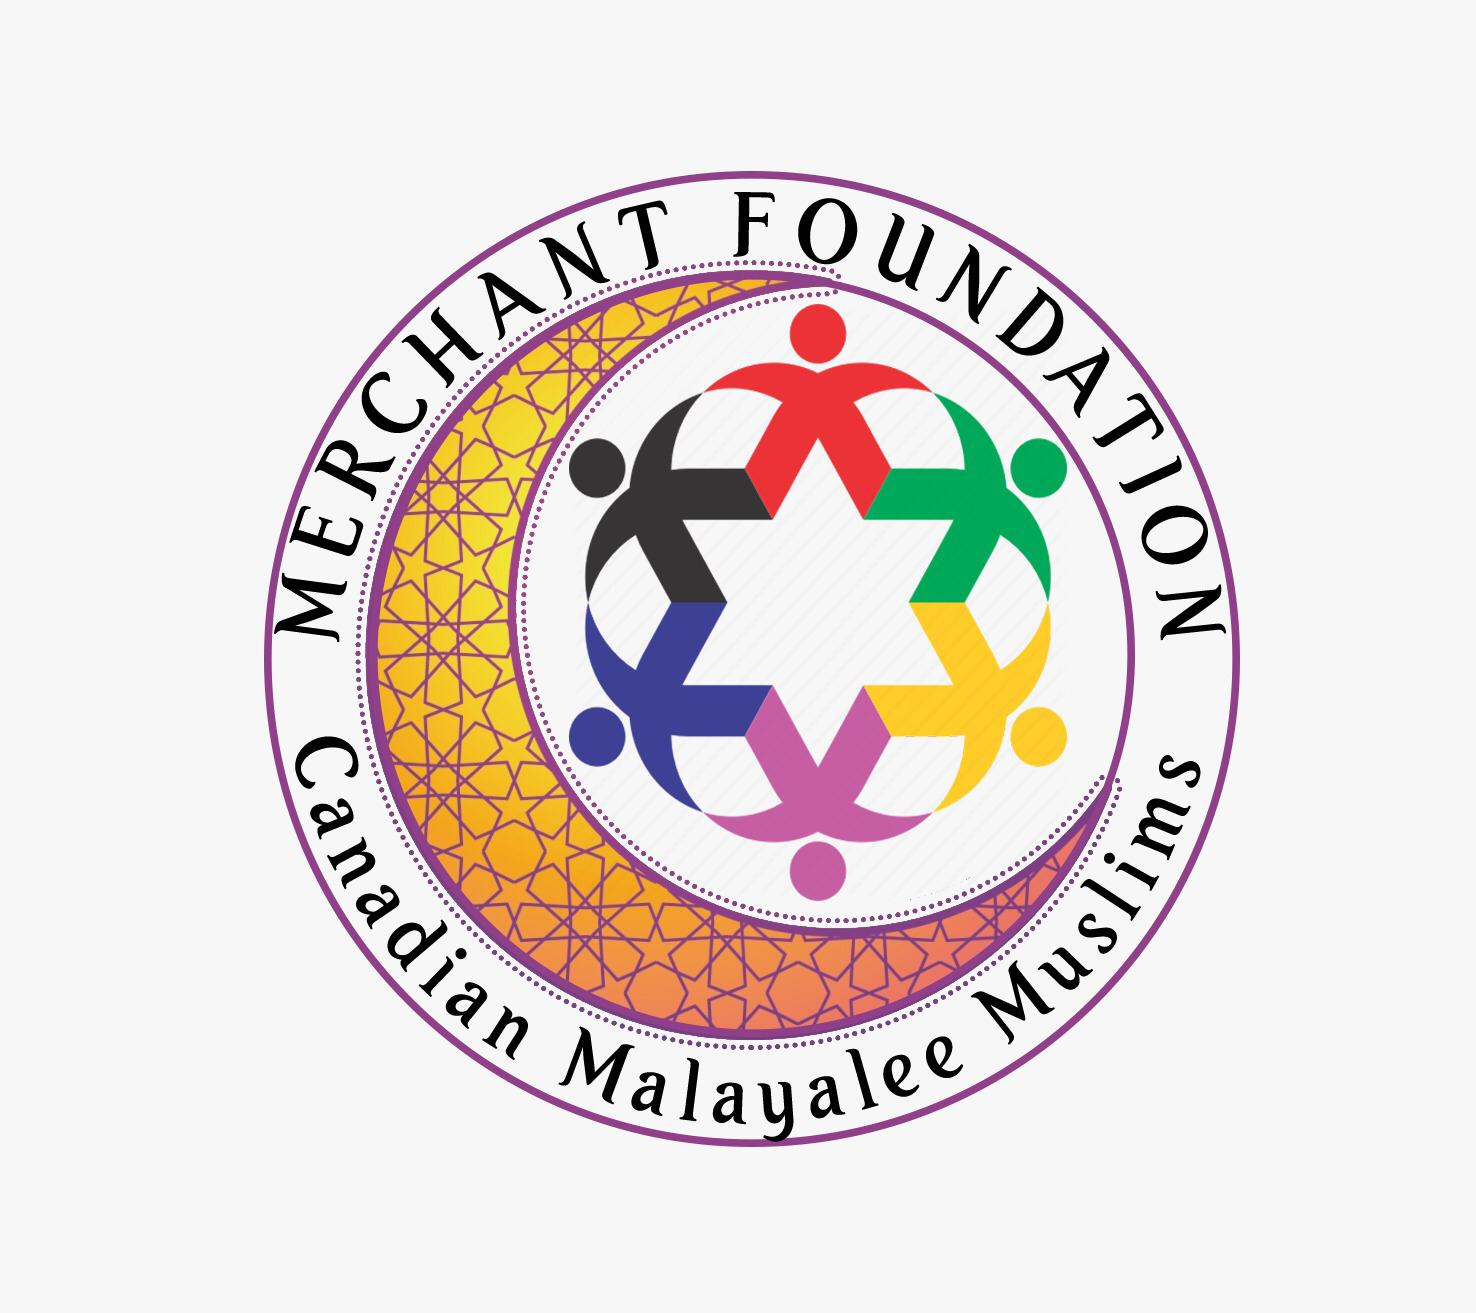 MERCHANT FOUNDATION – CANADIAN MALAYALI MUSLIMS